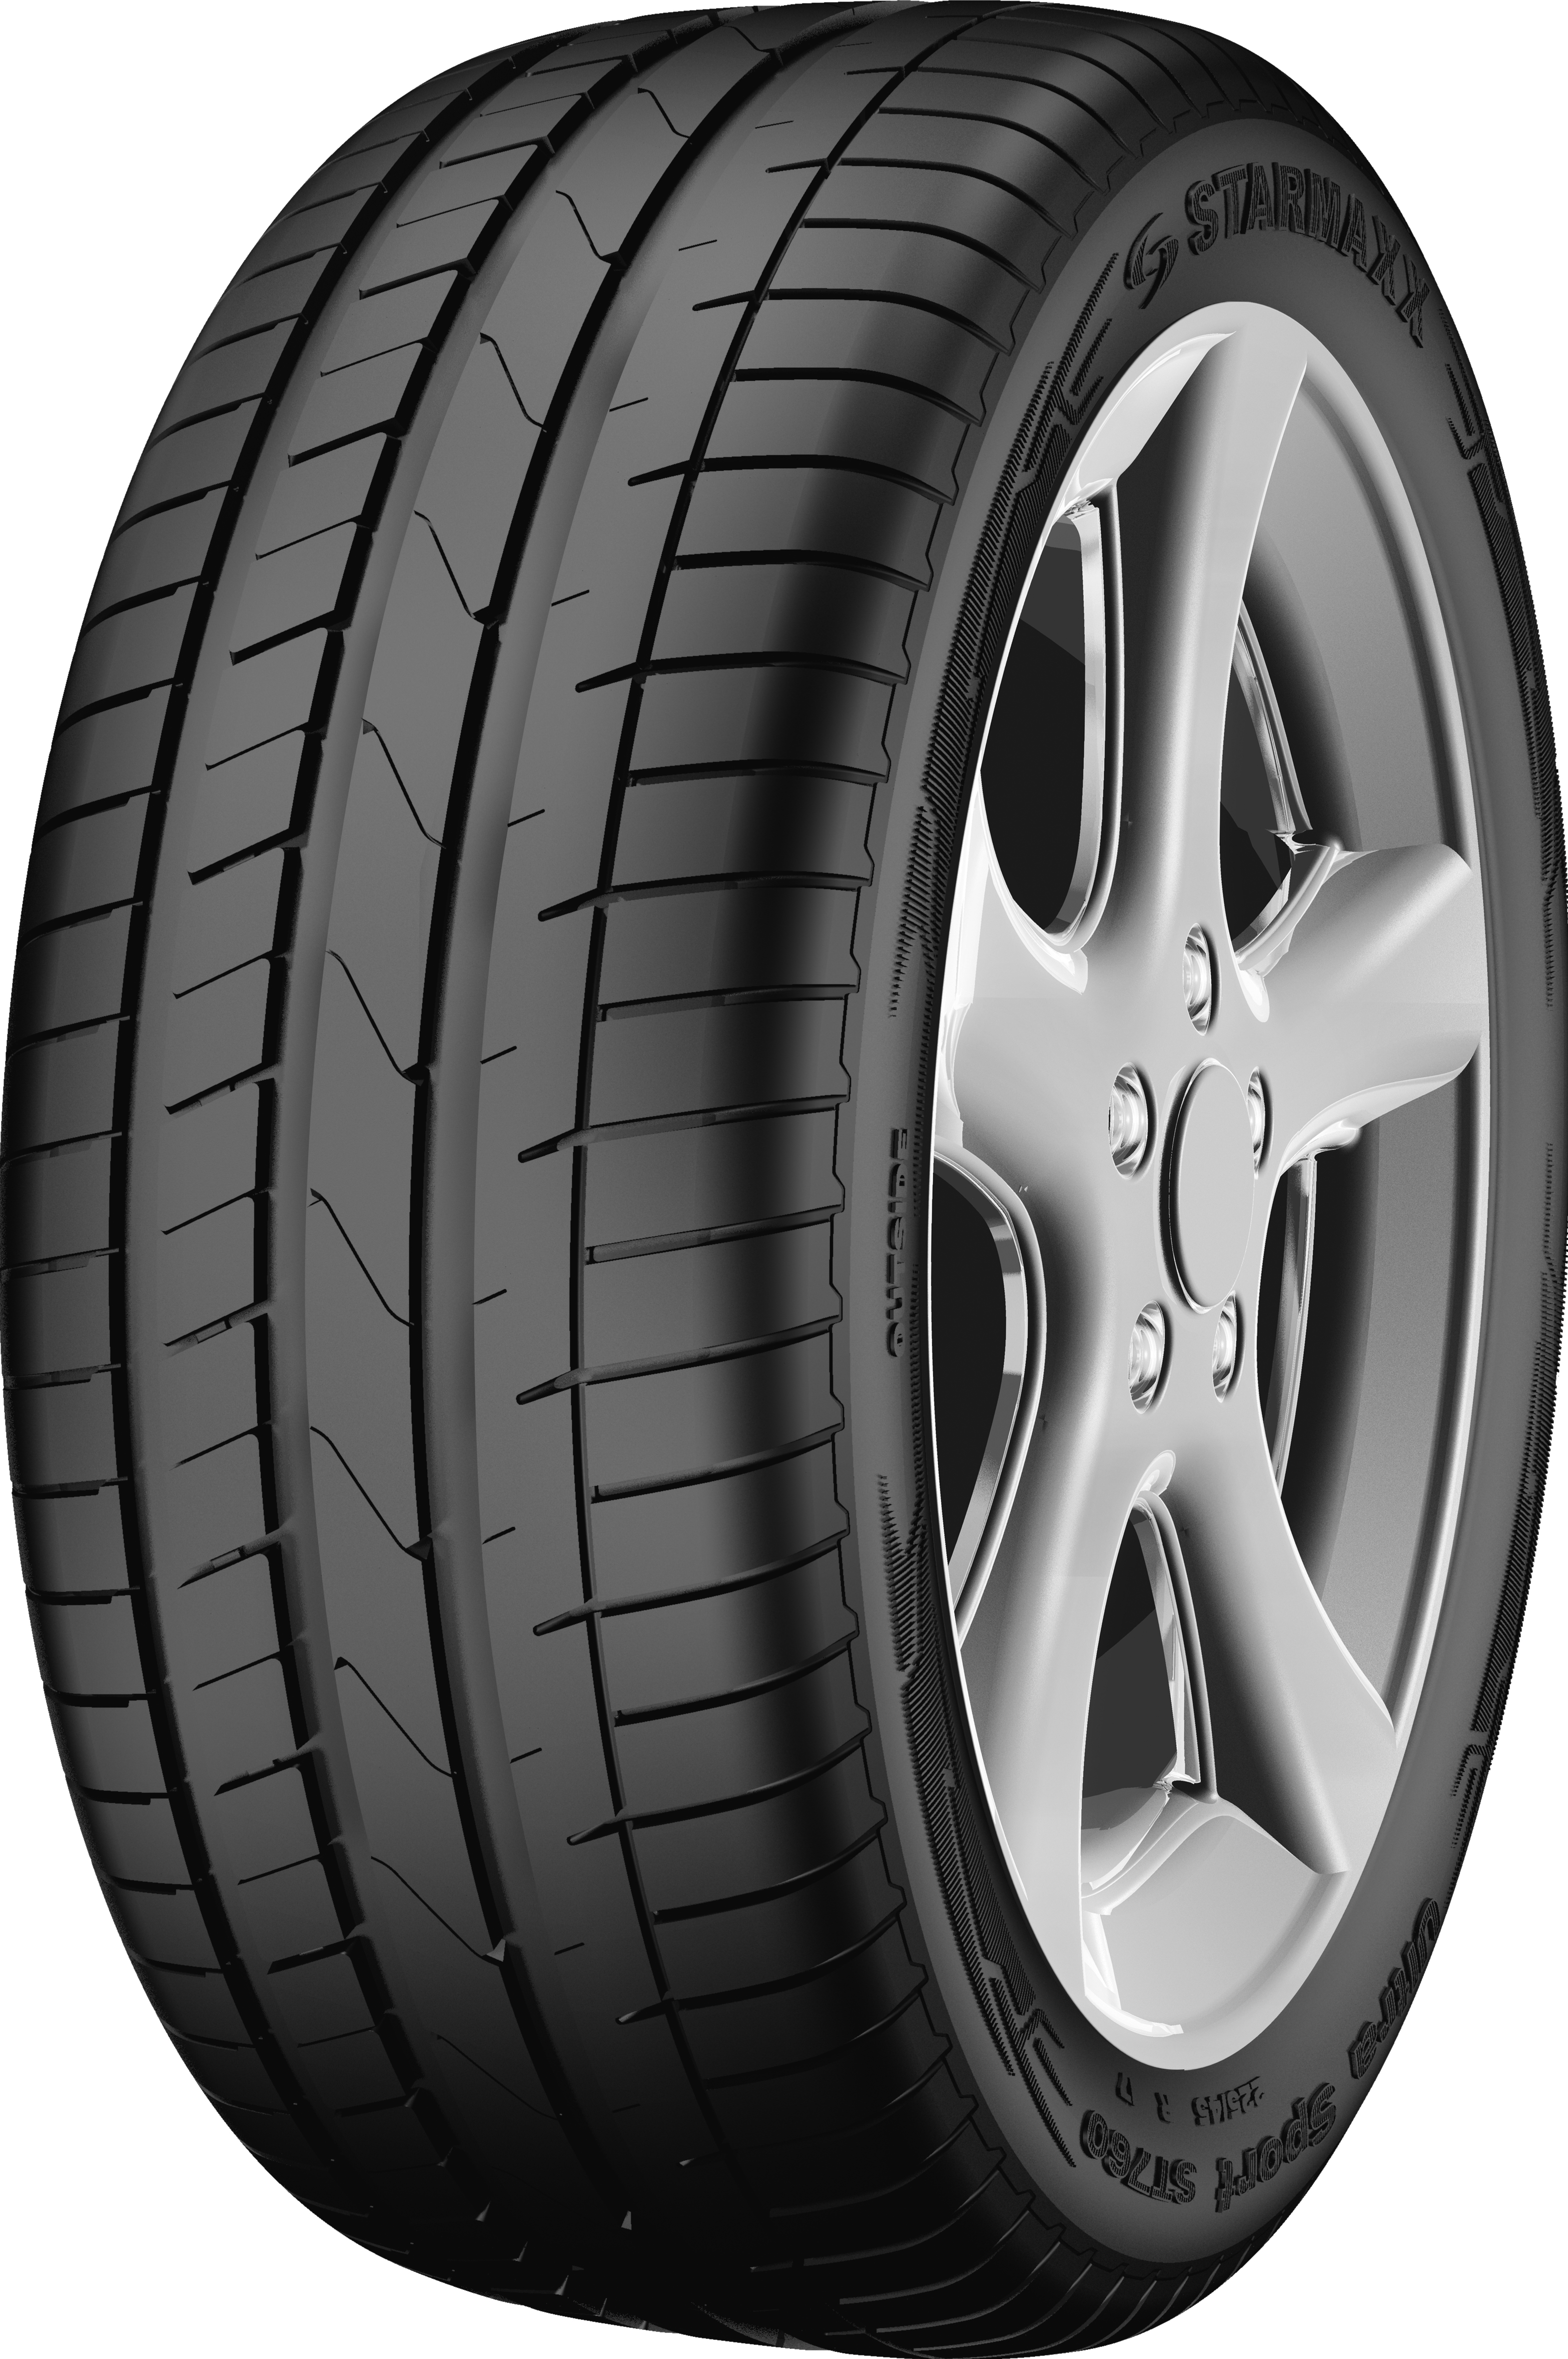 Anvelopa 225/55 ZR17 Ultrasport ST760 Reinforced (Starmaxx) photo